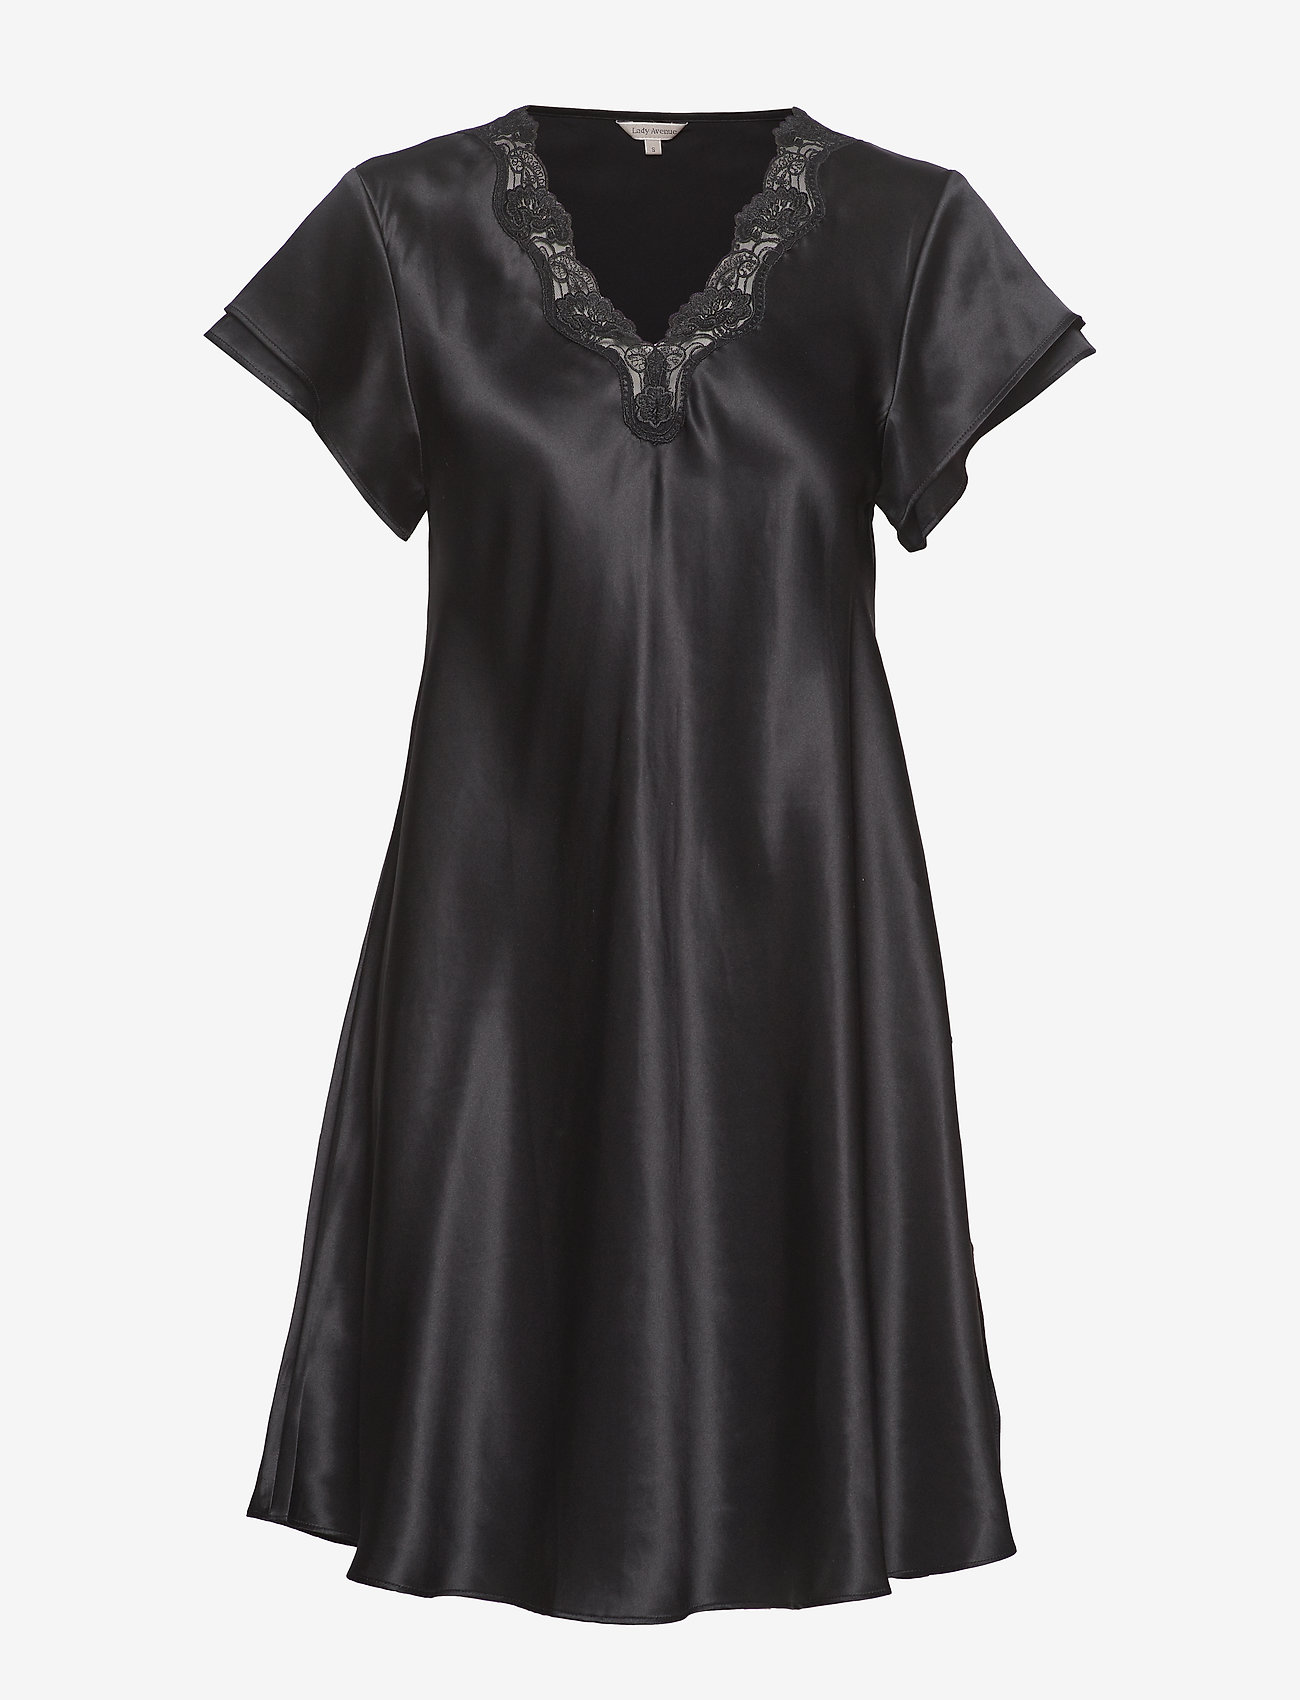 Lady Avenue - Pure Silk - Nightgown w.lace, short - nachthemden - black - 1